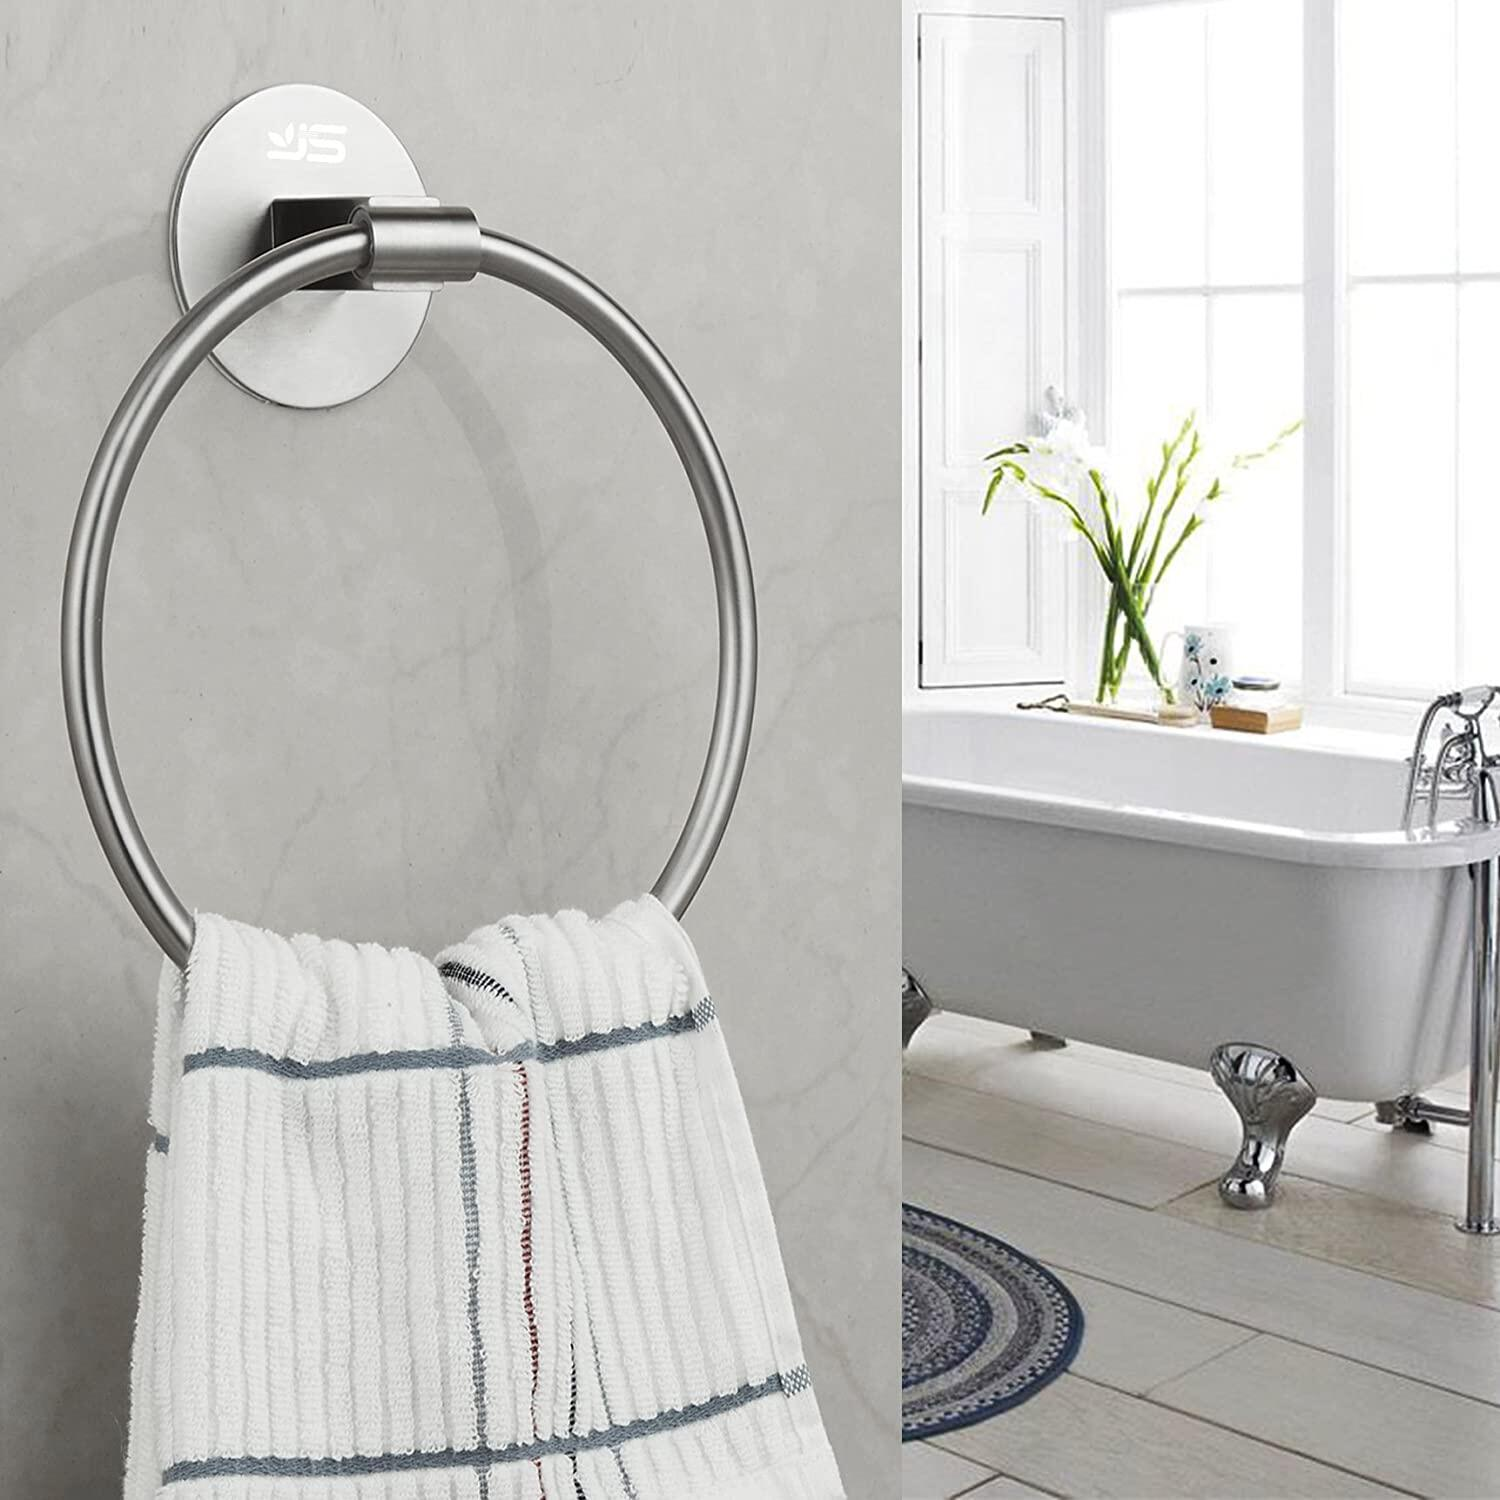 【NEW】Self Adhesive Towel Holder,Stainless Steel Bathroom Towel Ring 7.08 inches/18cm,Wall Mounted 3M Self Adhesive Hand Towel Rails for Kitchen Bathrooms JS Towel Ring, Self Adhesive Towel Ring at smart-join.com Towel Ring